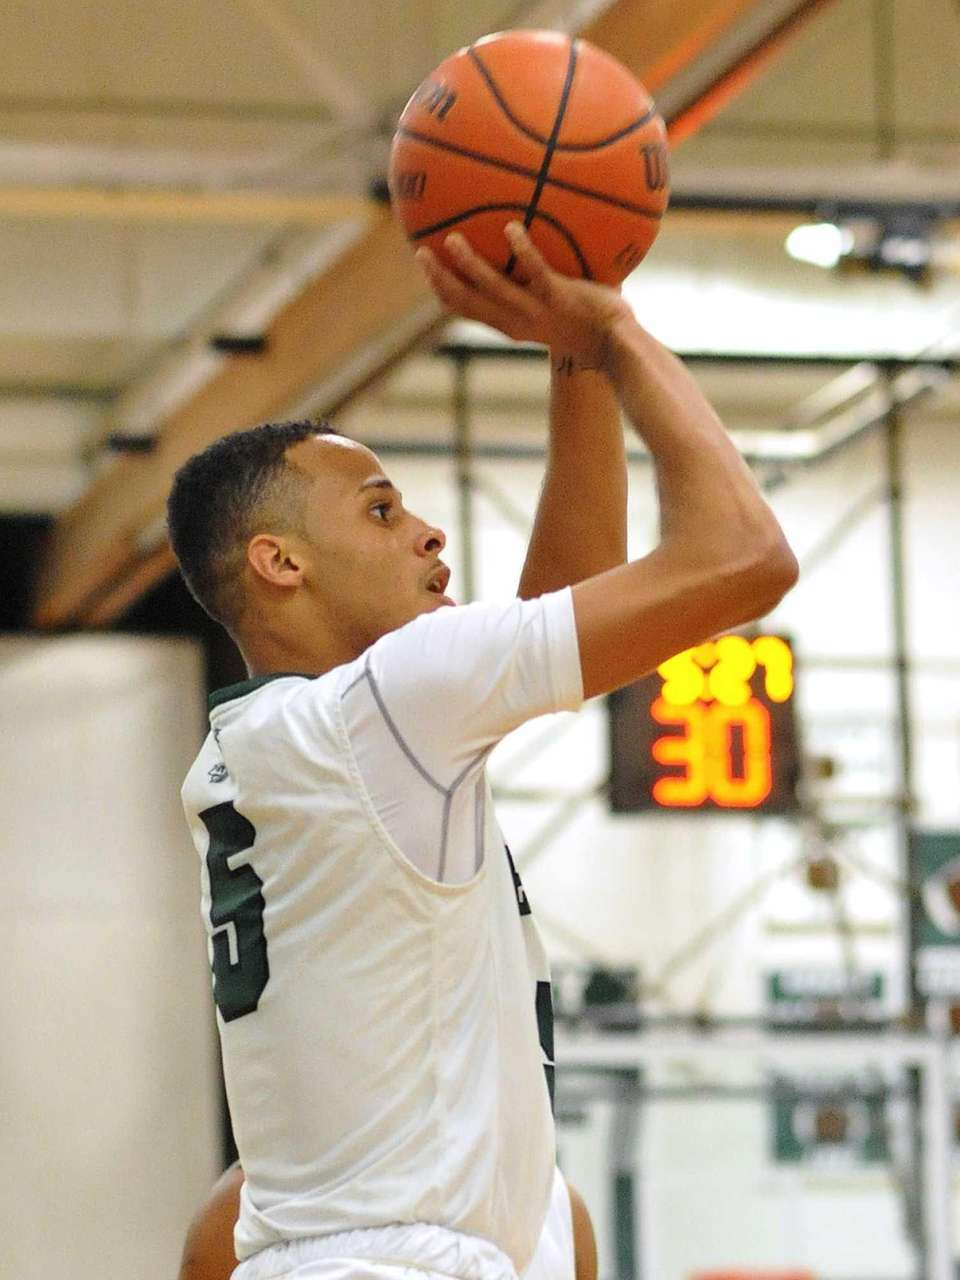 Michael Almonacy of Brentwood shoots a jumper during